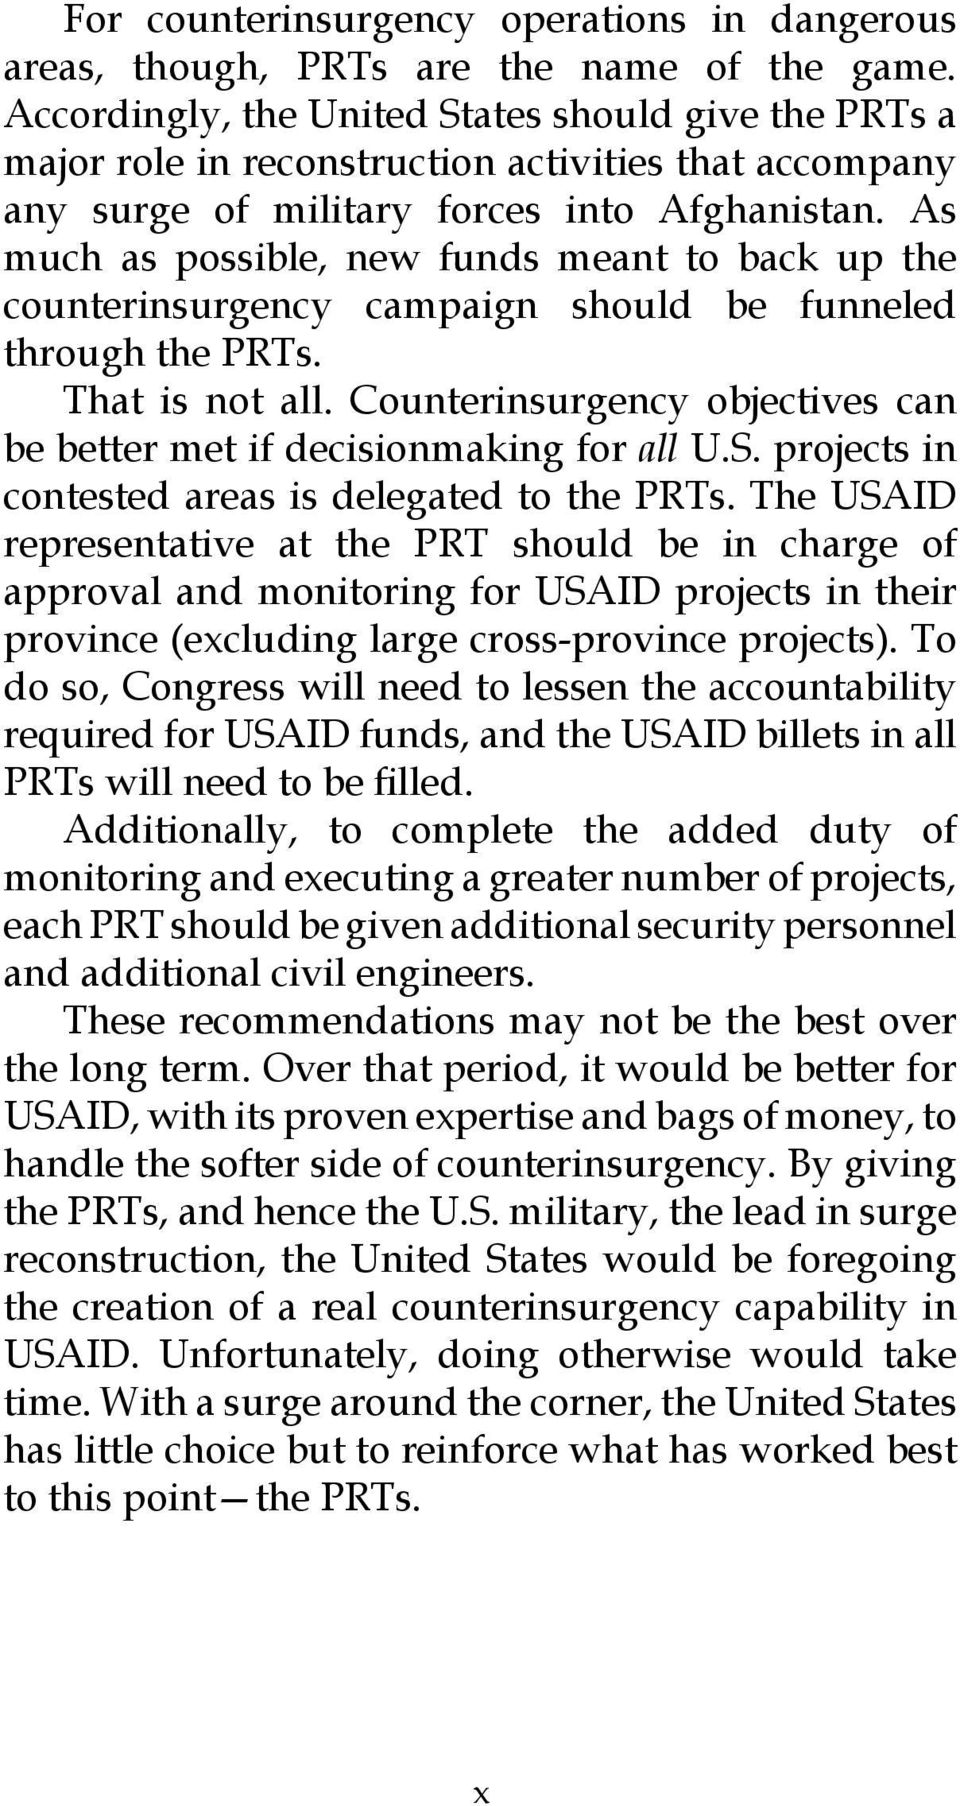 As much as possible, new funds meant to back up the counterinsurgency campaign should be funneled through the PRTs. That is not all.